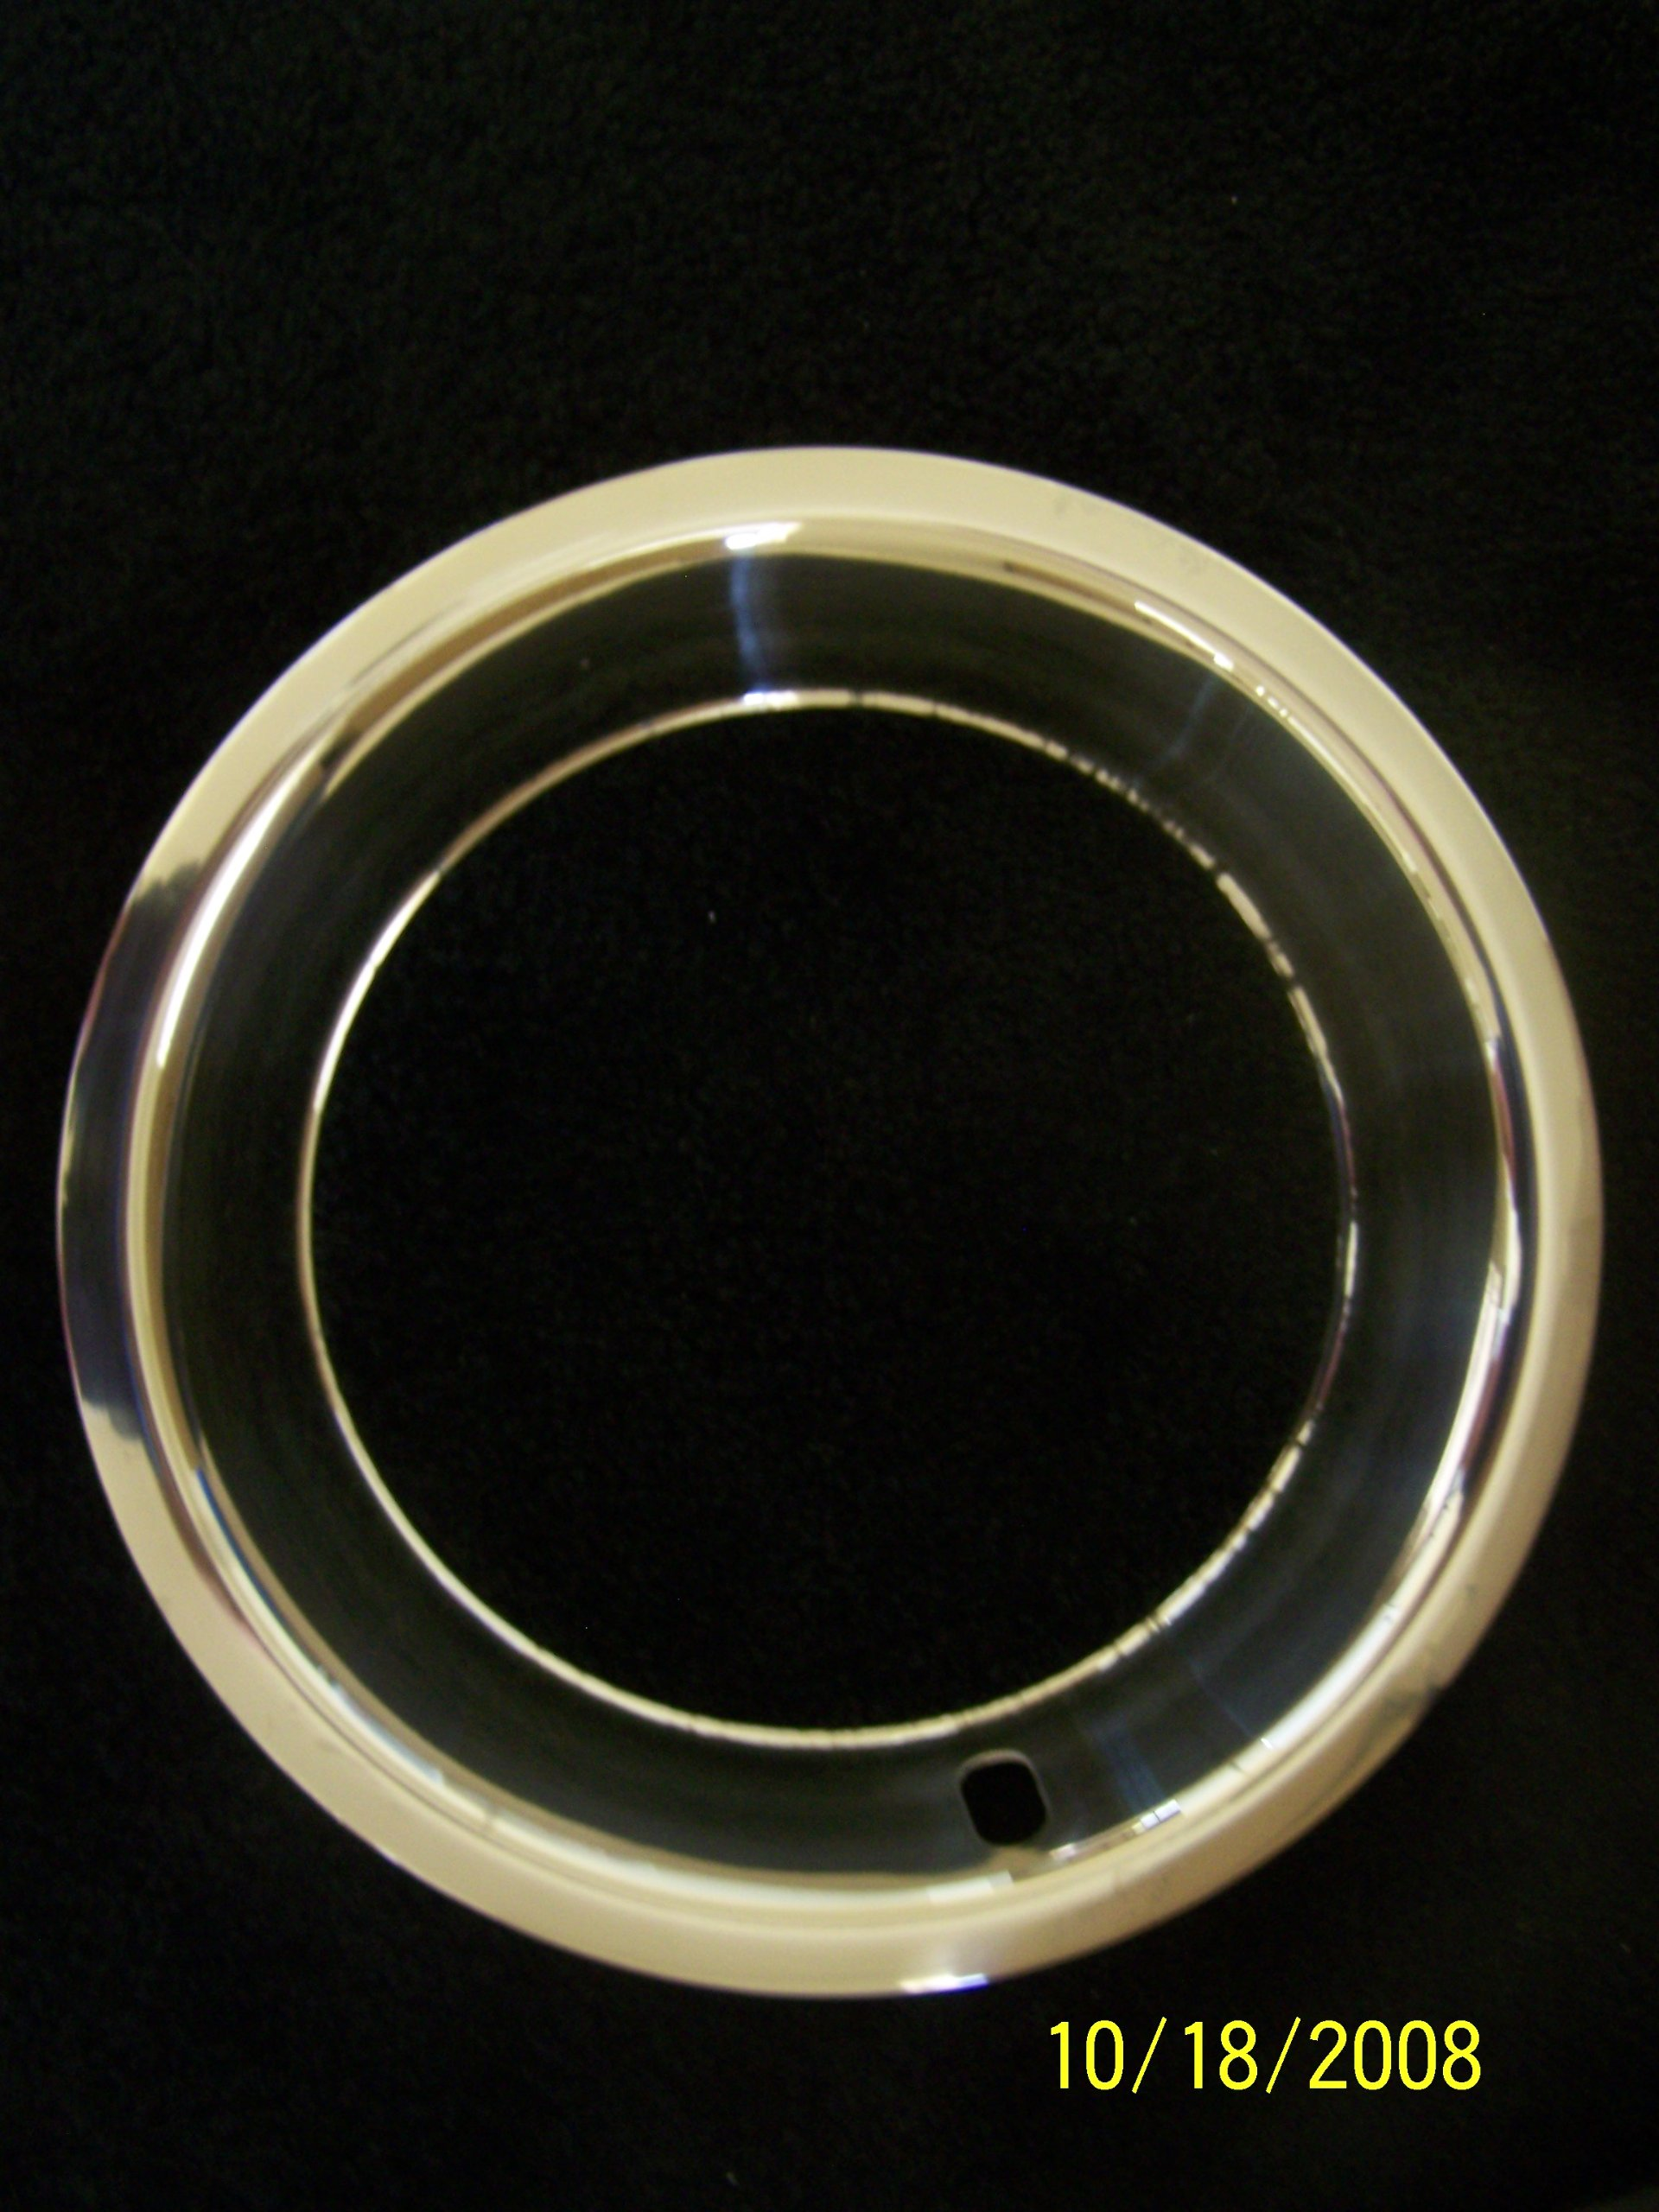 15x8 Deep Dish Chrome Plated Stainless Steel Beauty Trim Rings